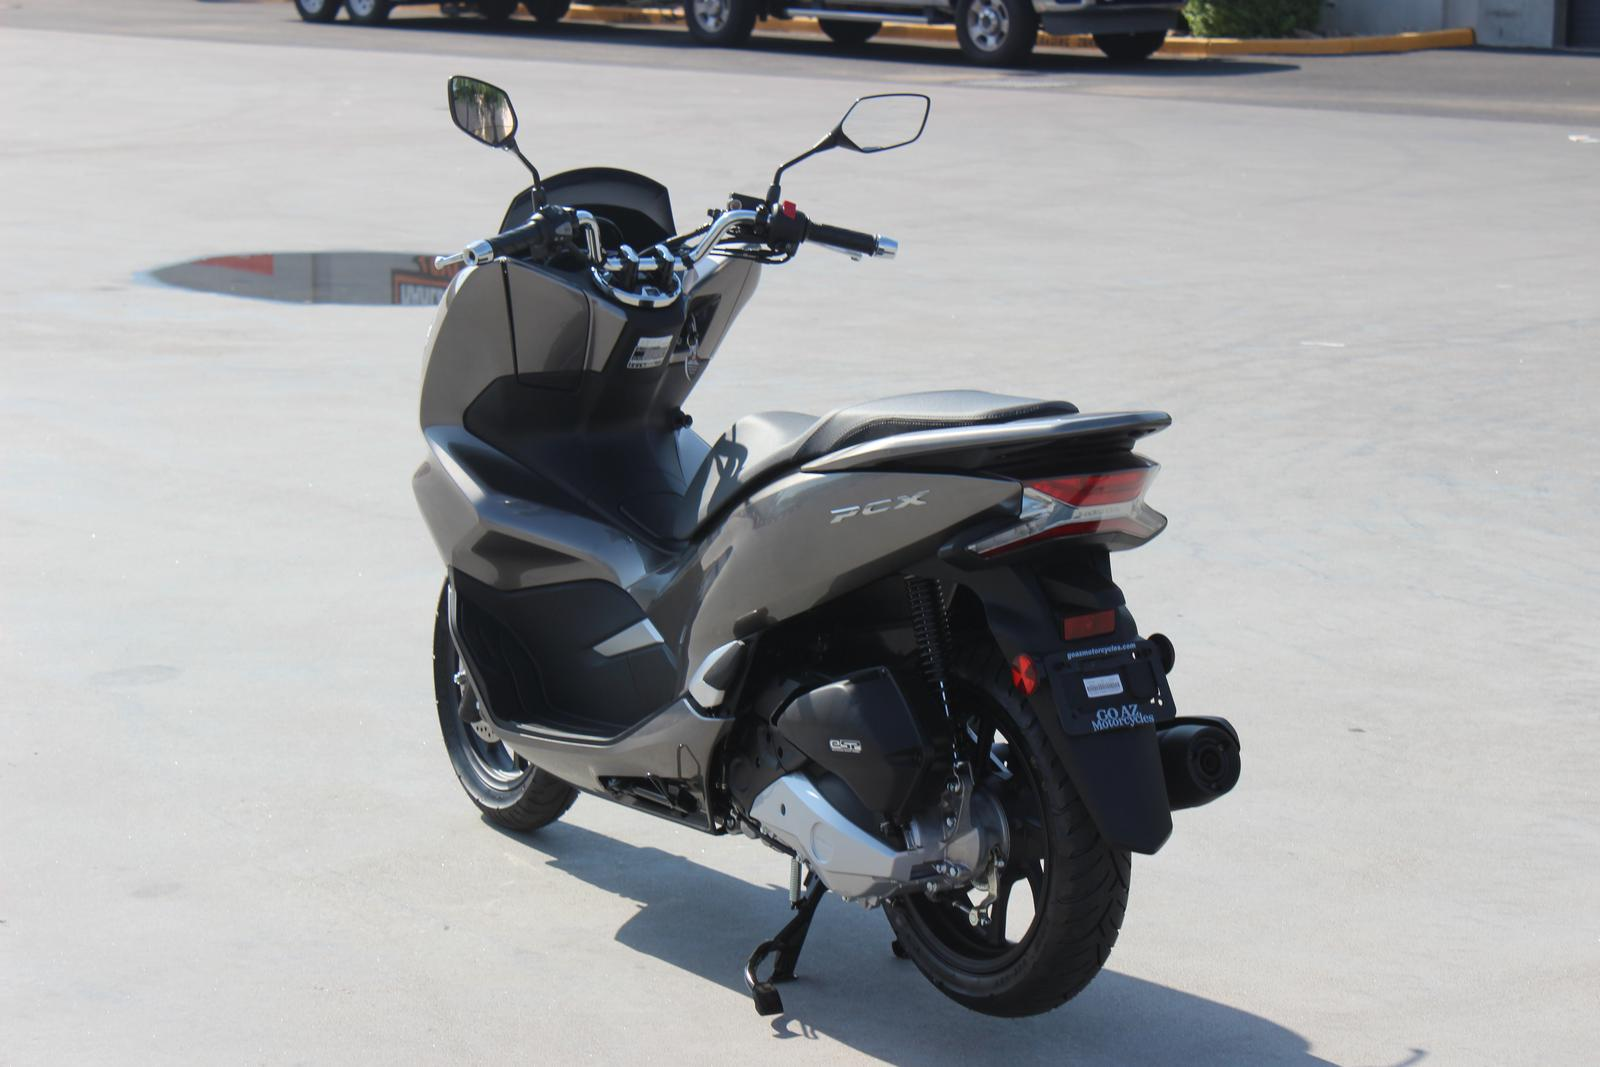 2019 Honda Pcx150 For Sale In Scottsdale Az Go Az Motorcycles In